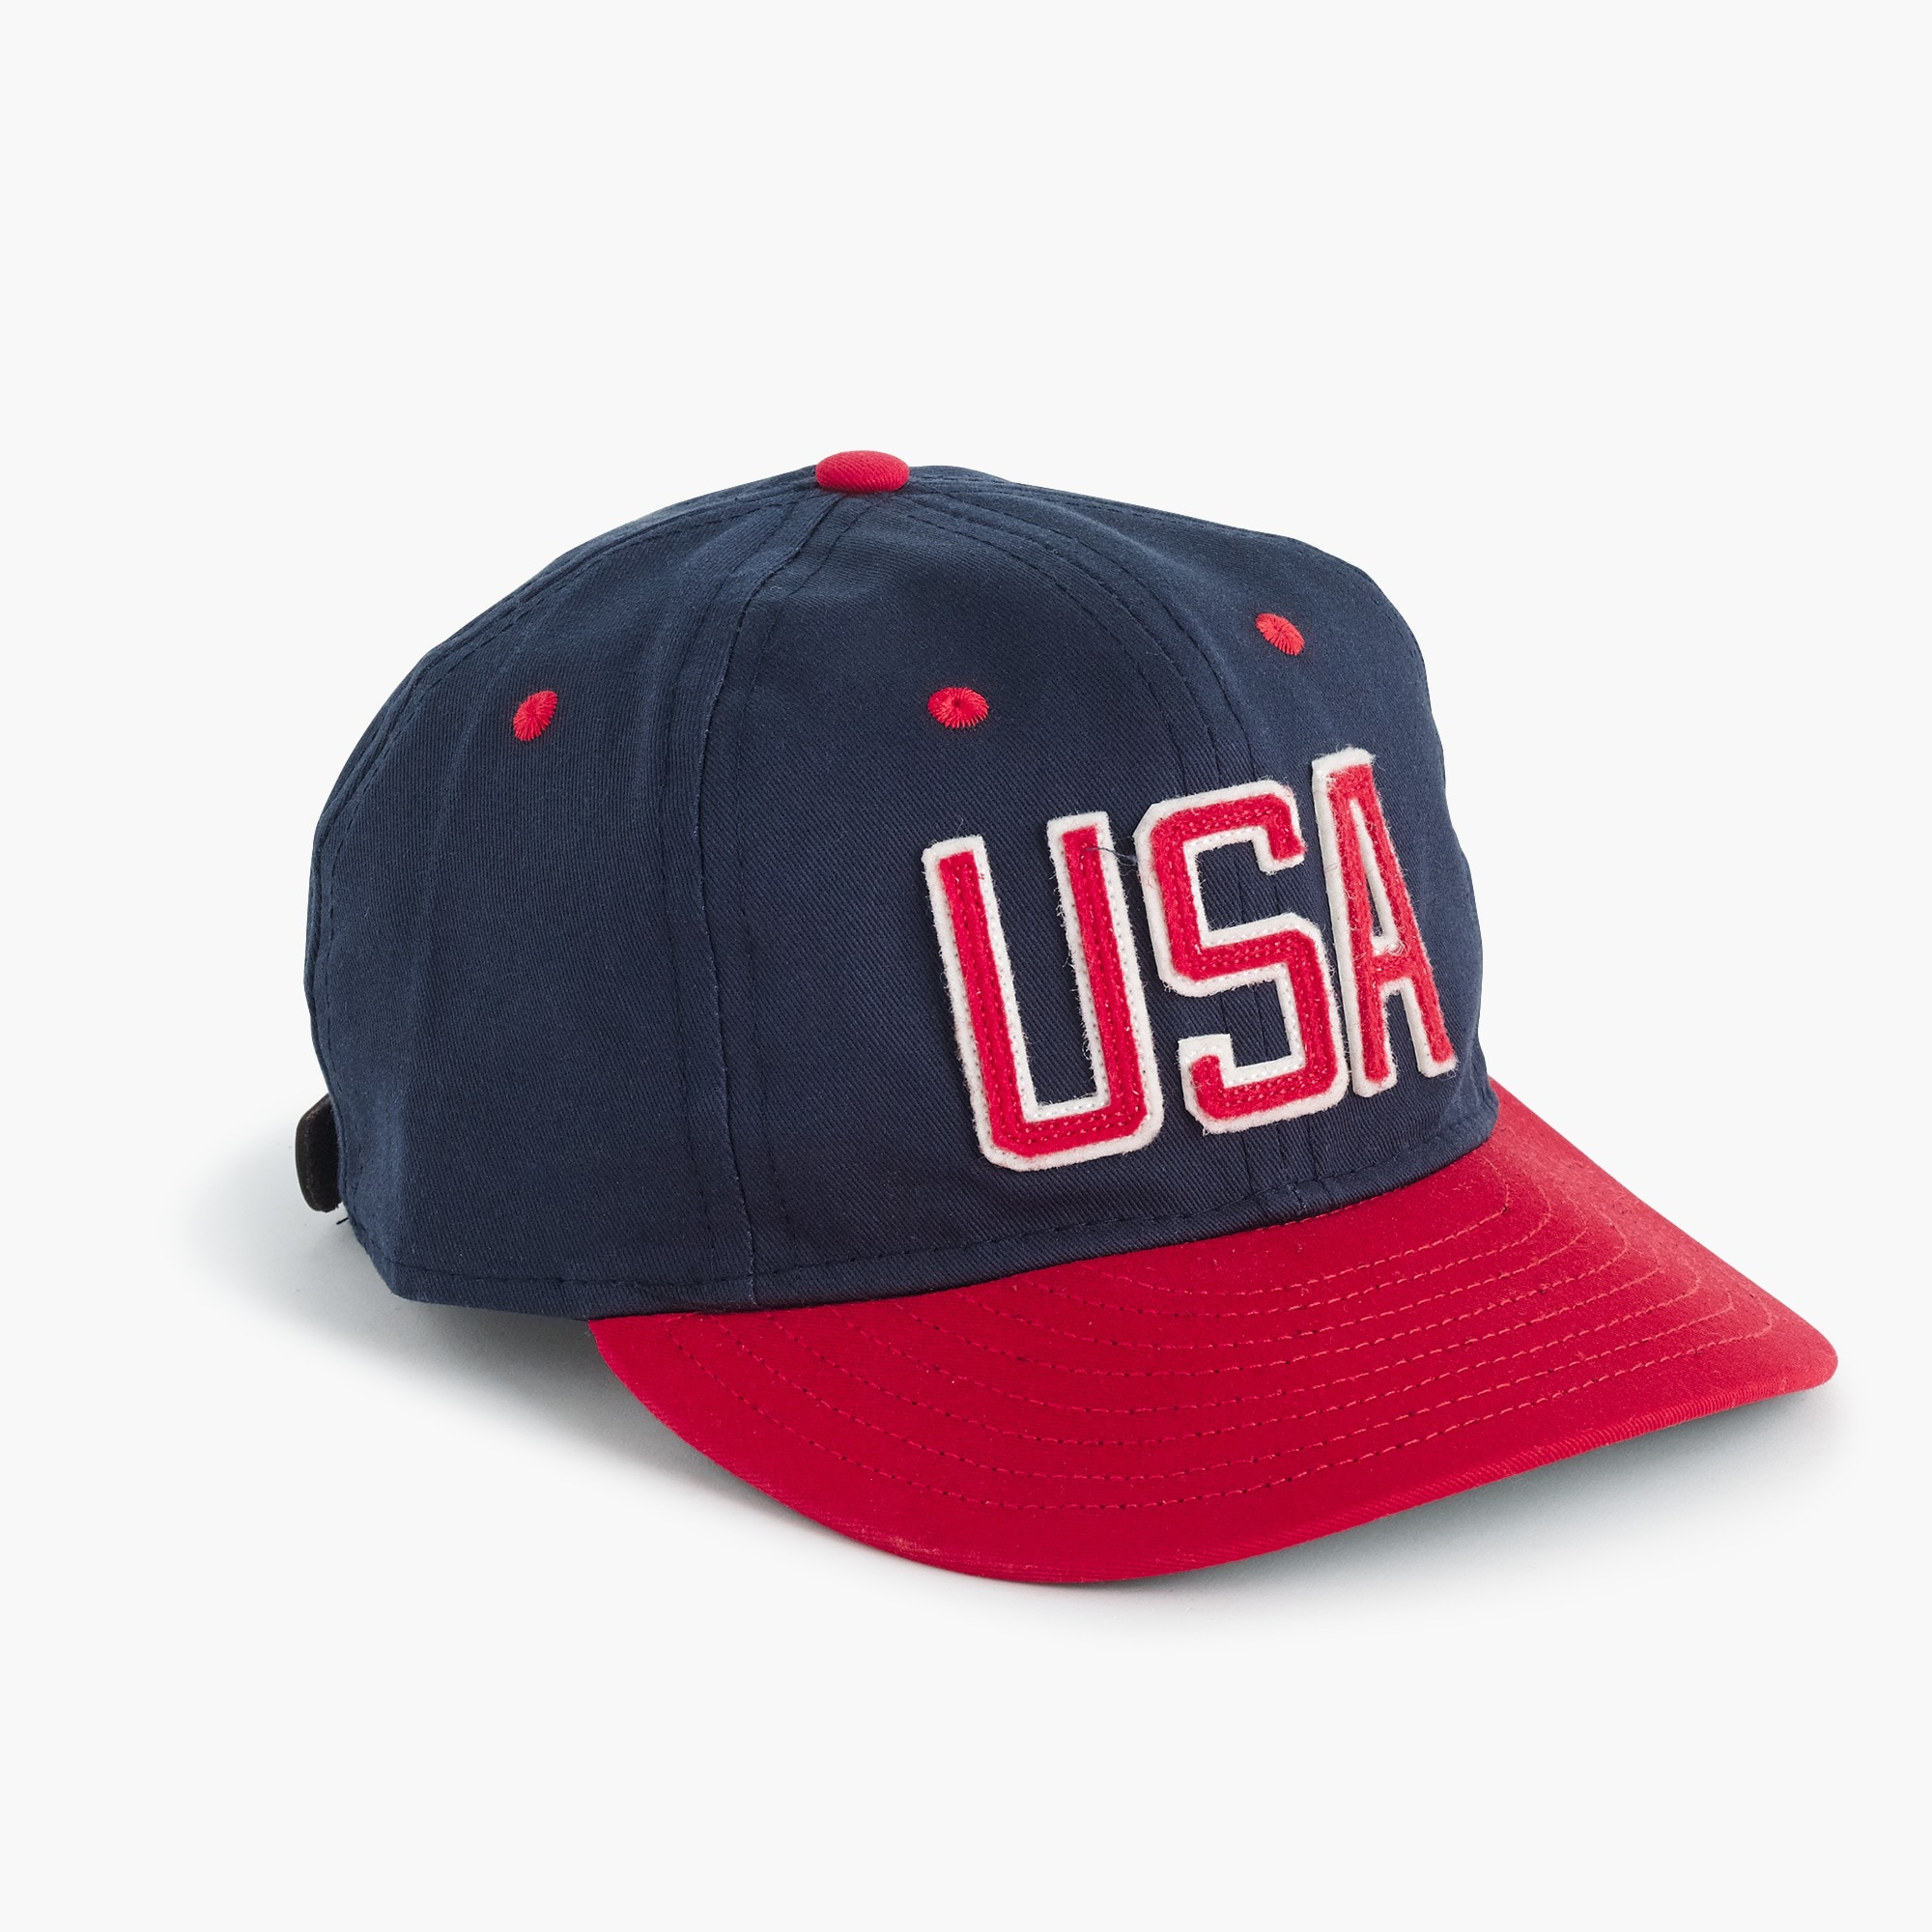 "ebbets field flannels® for j.crew ""usa"" ball cap : men accessories"